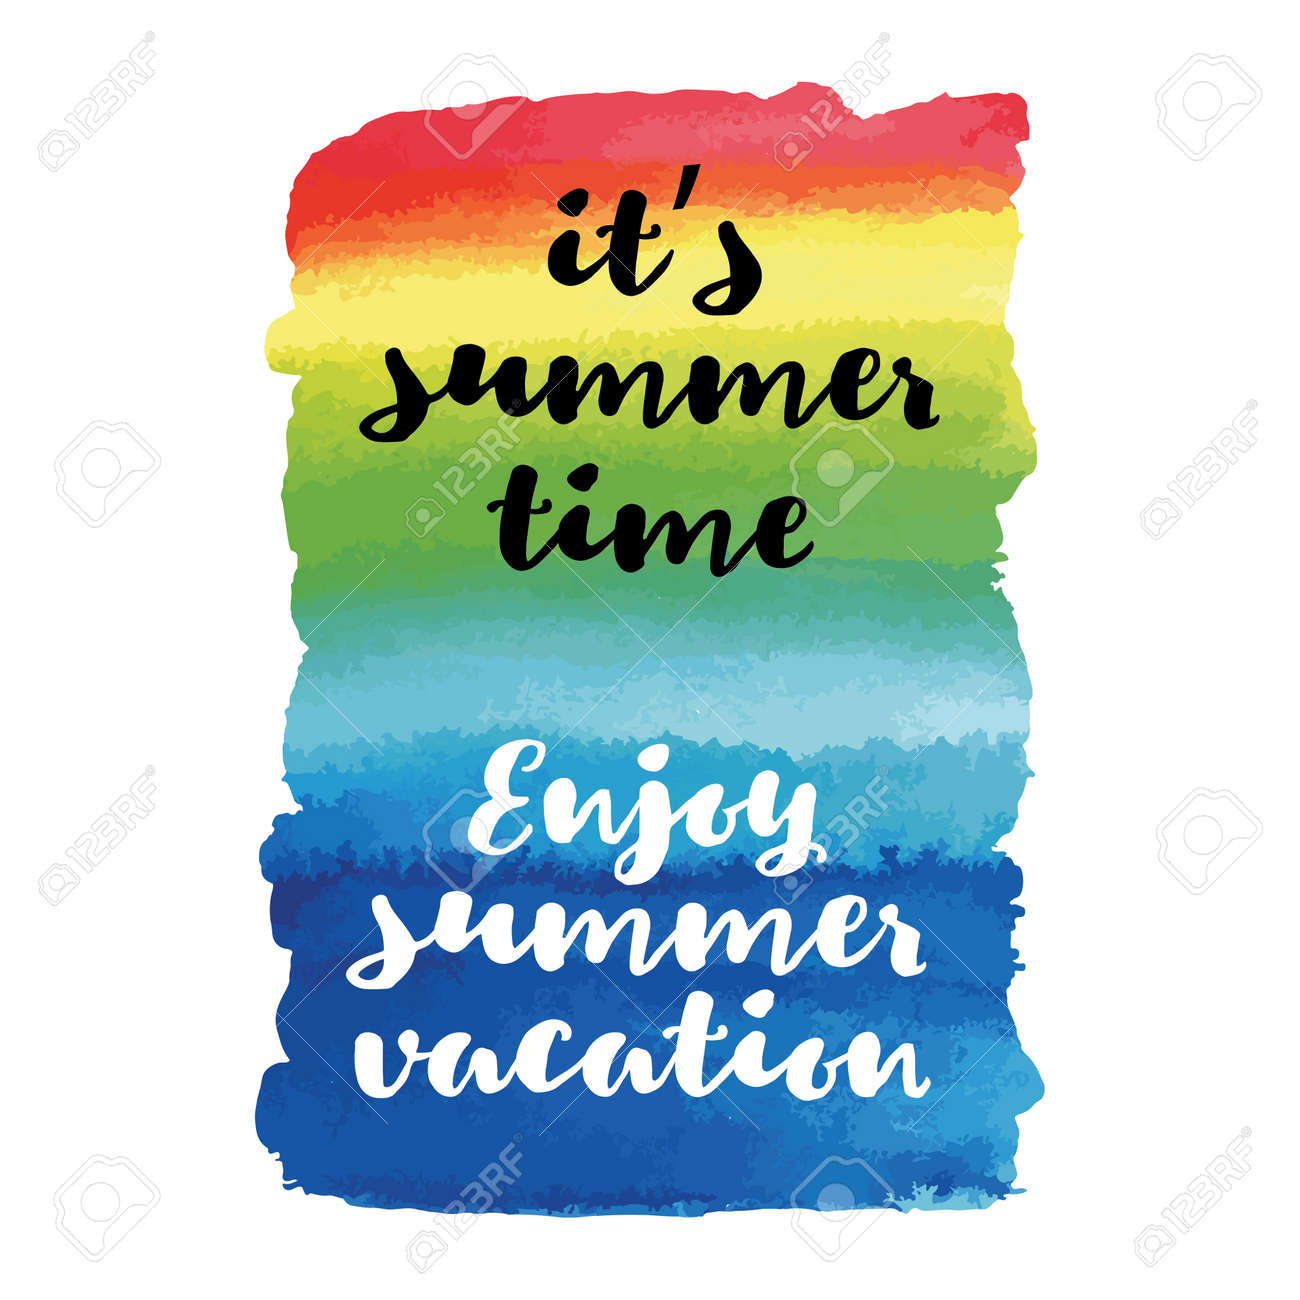 Enjoy Summer Vacation Its Time Quote Vector Poster Stock Photo